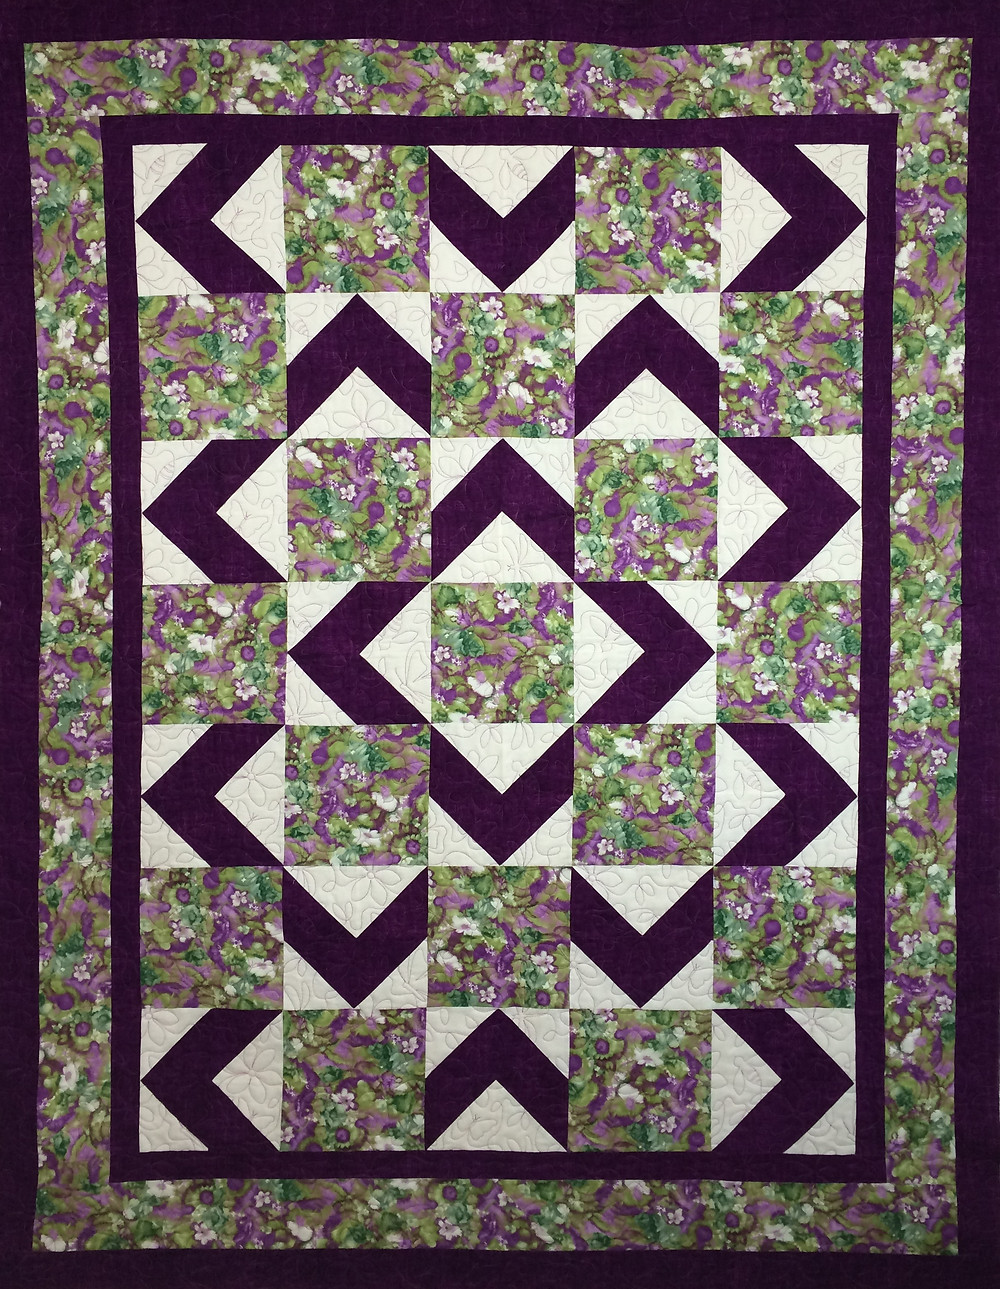 Walk About for Mom Quilt in purples anbd white